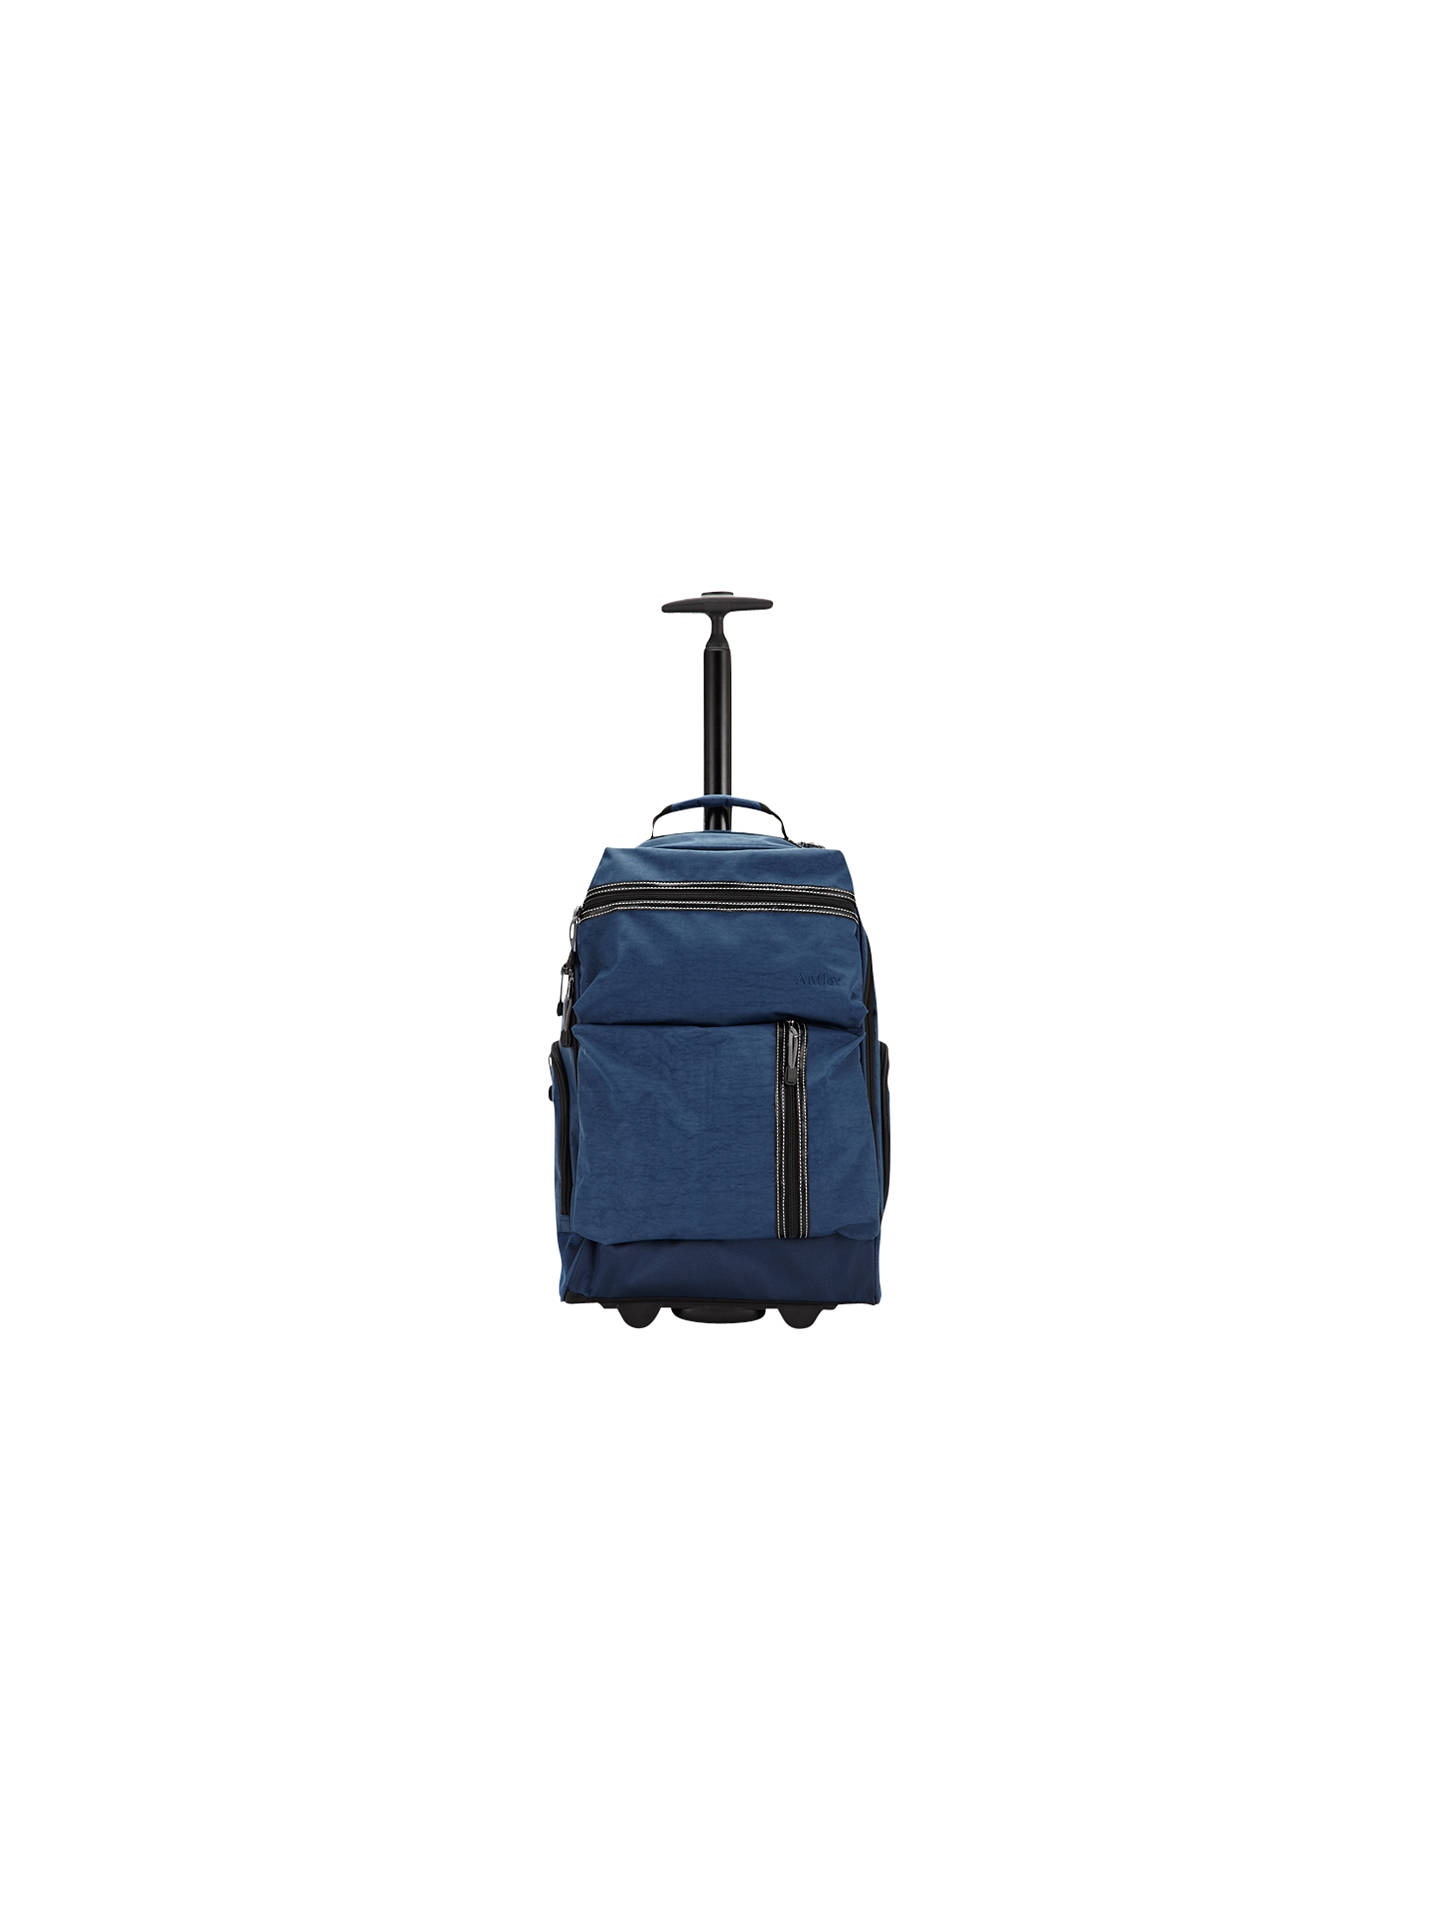 Antler Tundra Trolley Backpack- Fenix Toulouse Handball c3807e0b55f9e